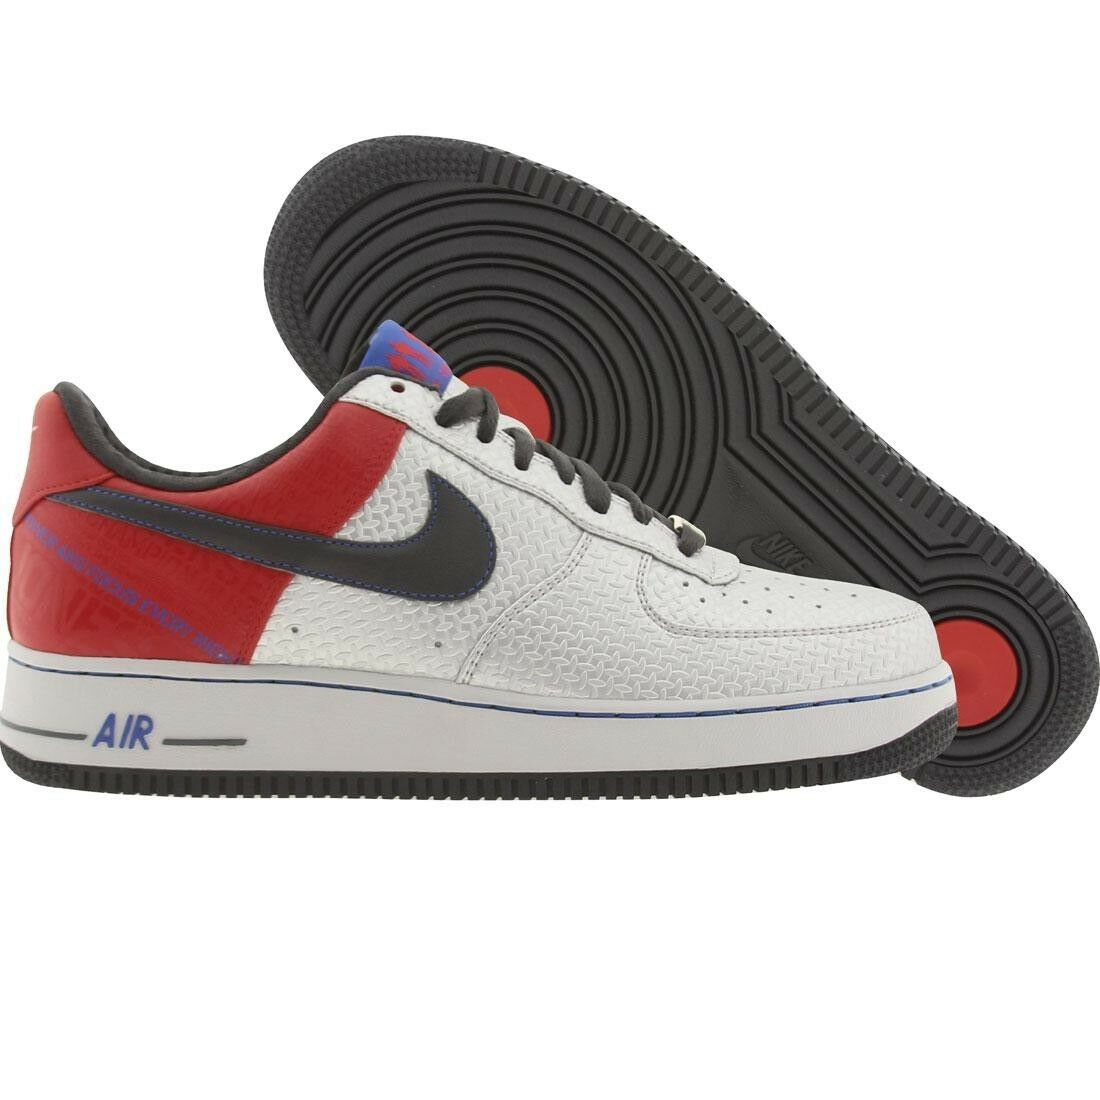 3201890001 Nike Force 1 Baja Premium Jones Original Air seis Bobby Jones Premium Plata Rojo 3bf620